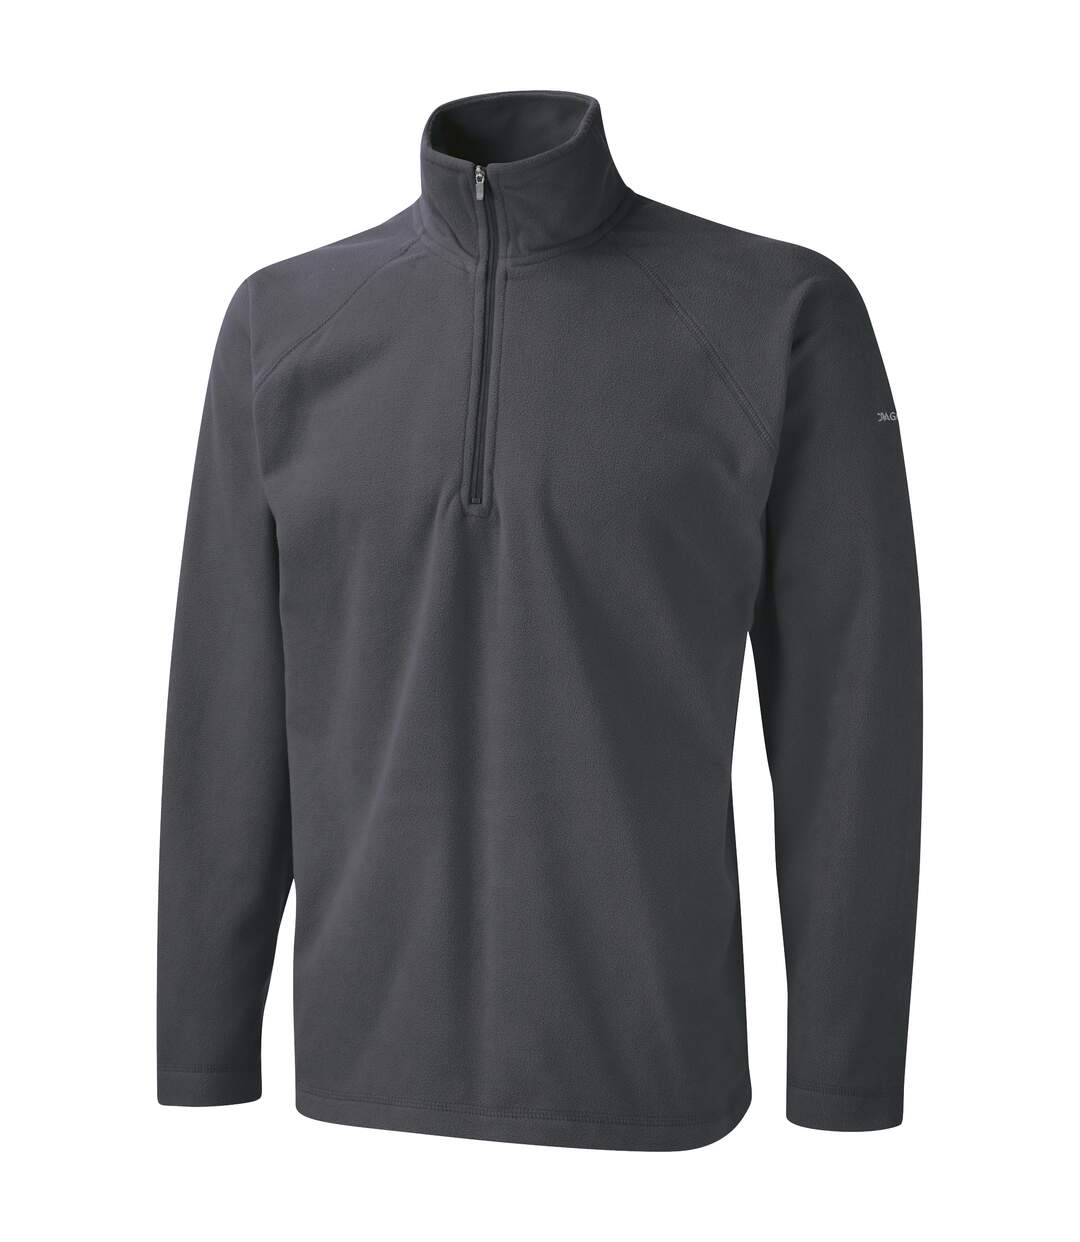 Craghoppers Mens Basecamp Microfleece FZ Half Zip Fleece Top (Navy) - UTRW366